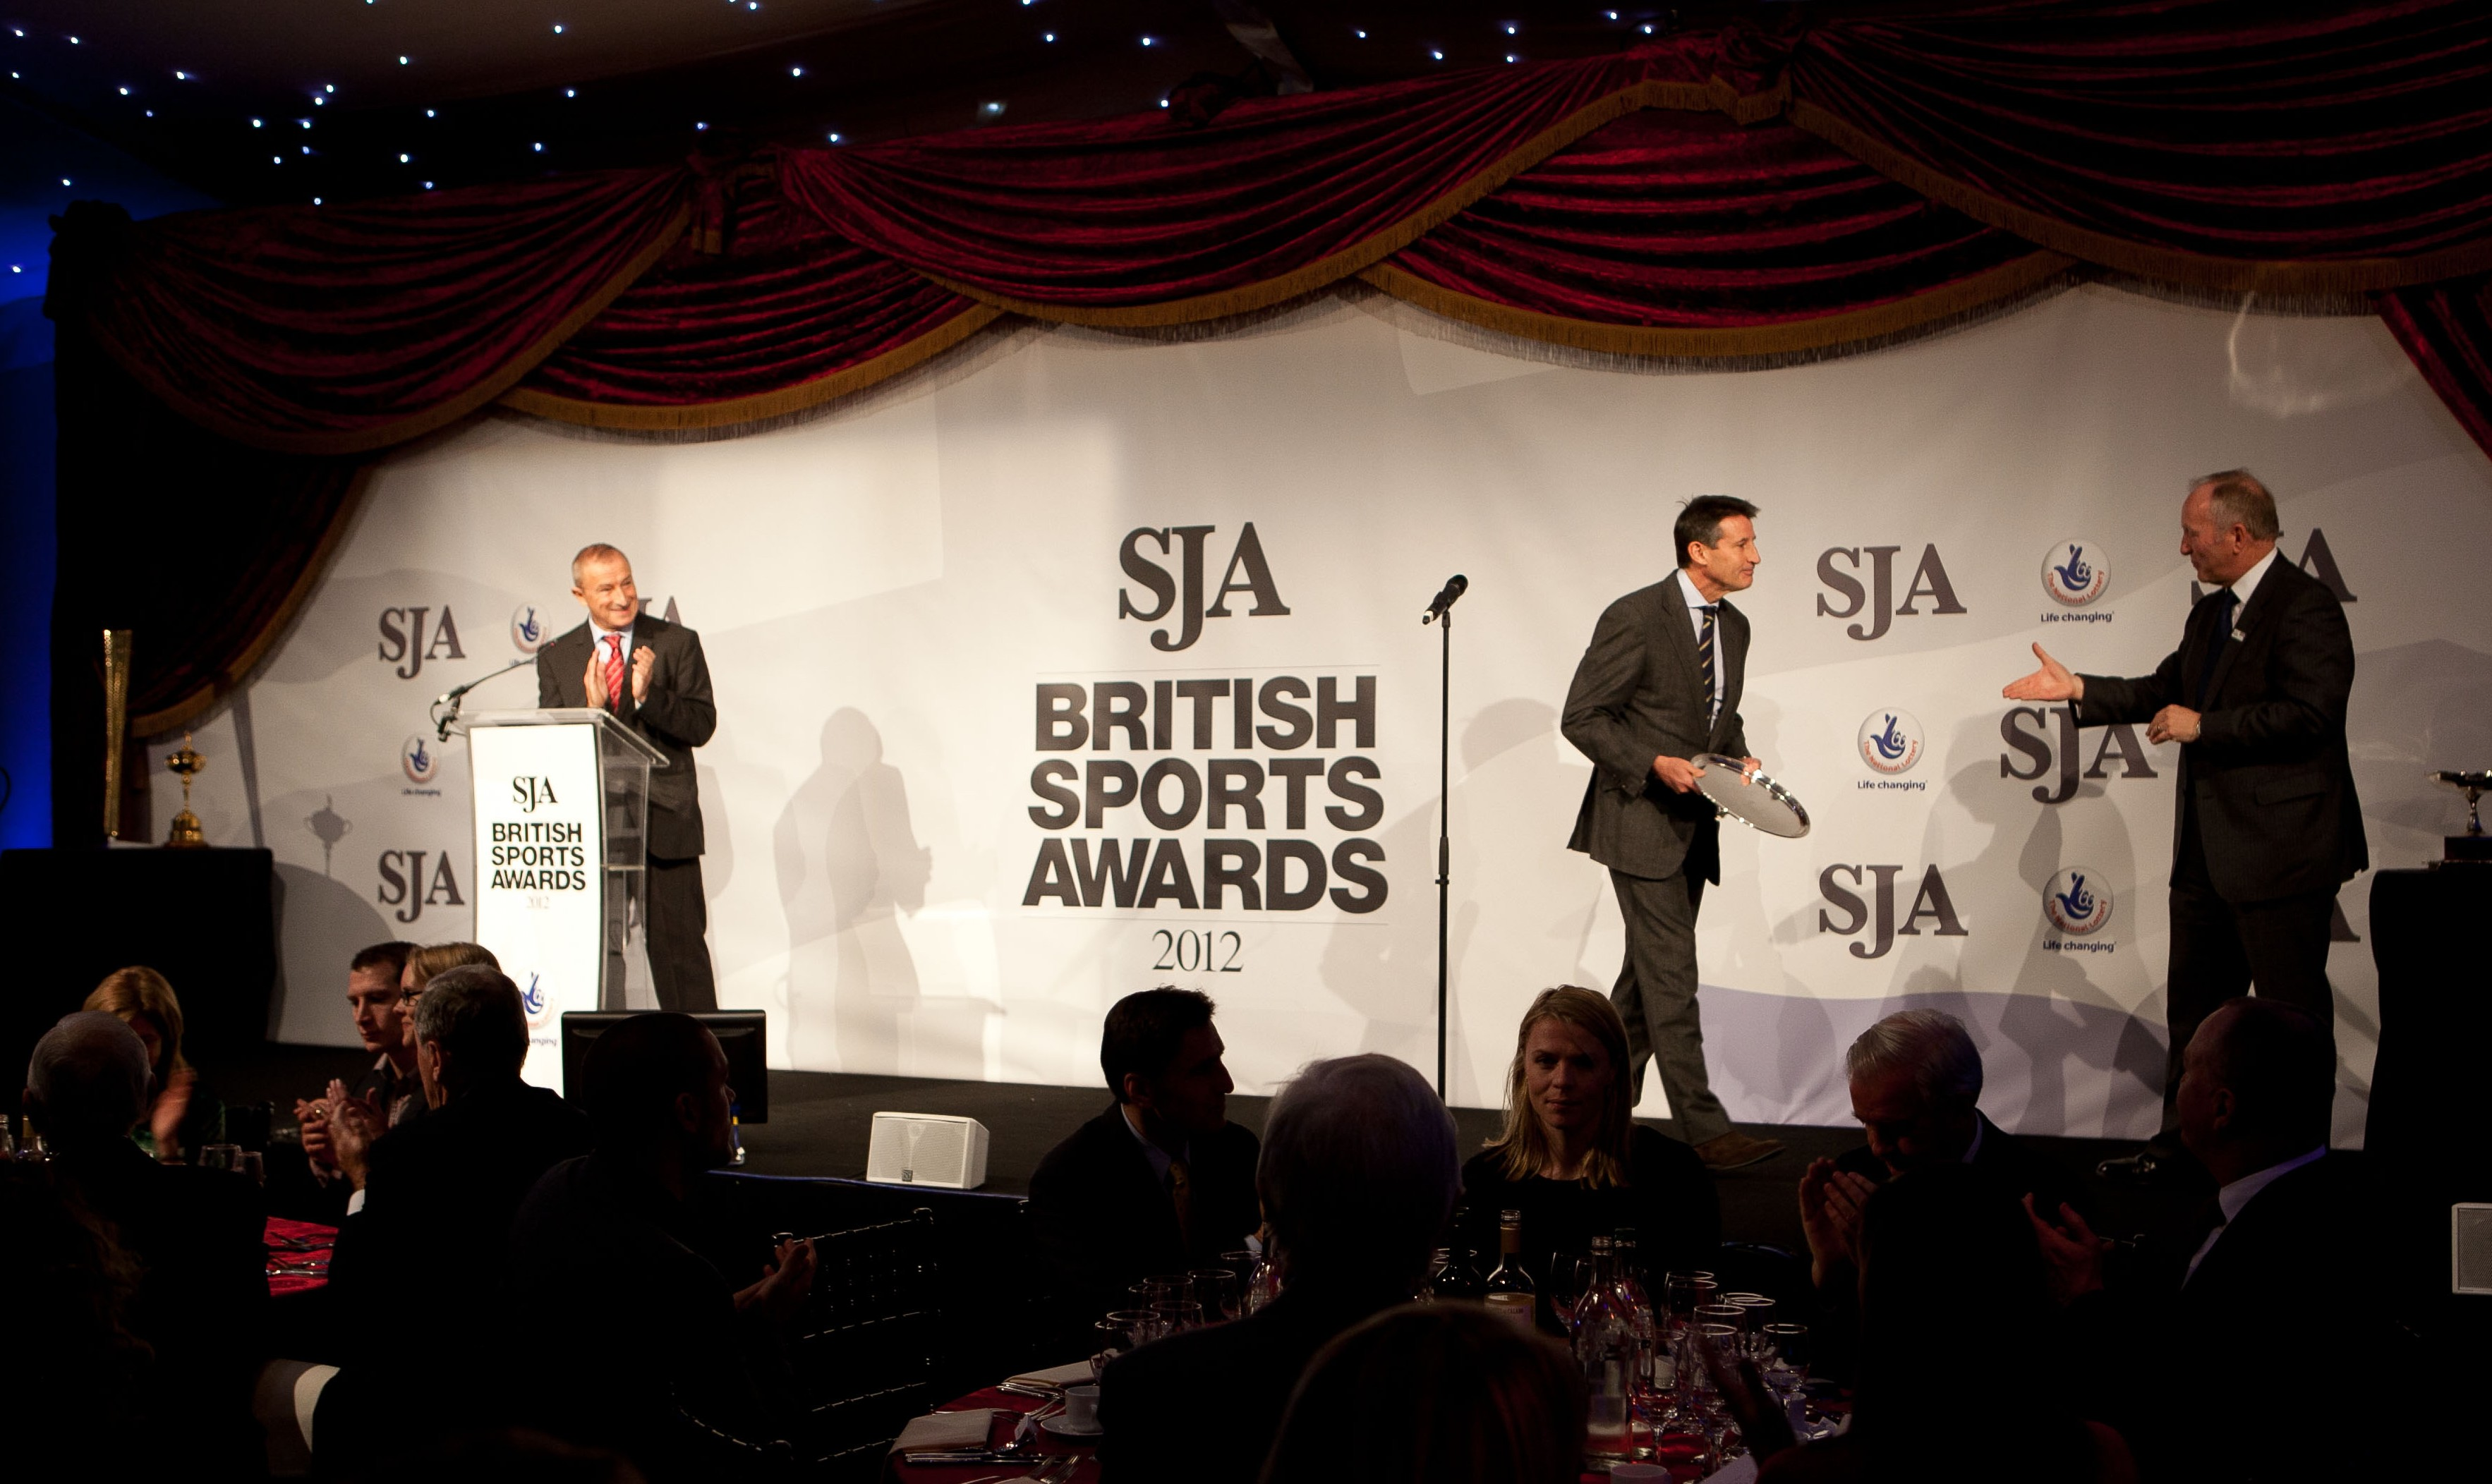 Watched over by Jim Rosenthal, Sebastian Coe, the chairman of LOCOG, collects the JL Manning Award for services to sport from SJA vice chairman David Walker